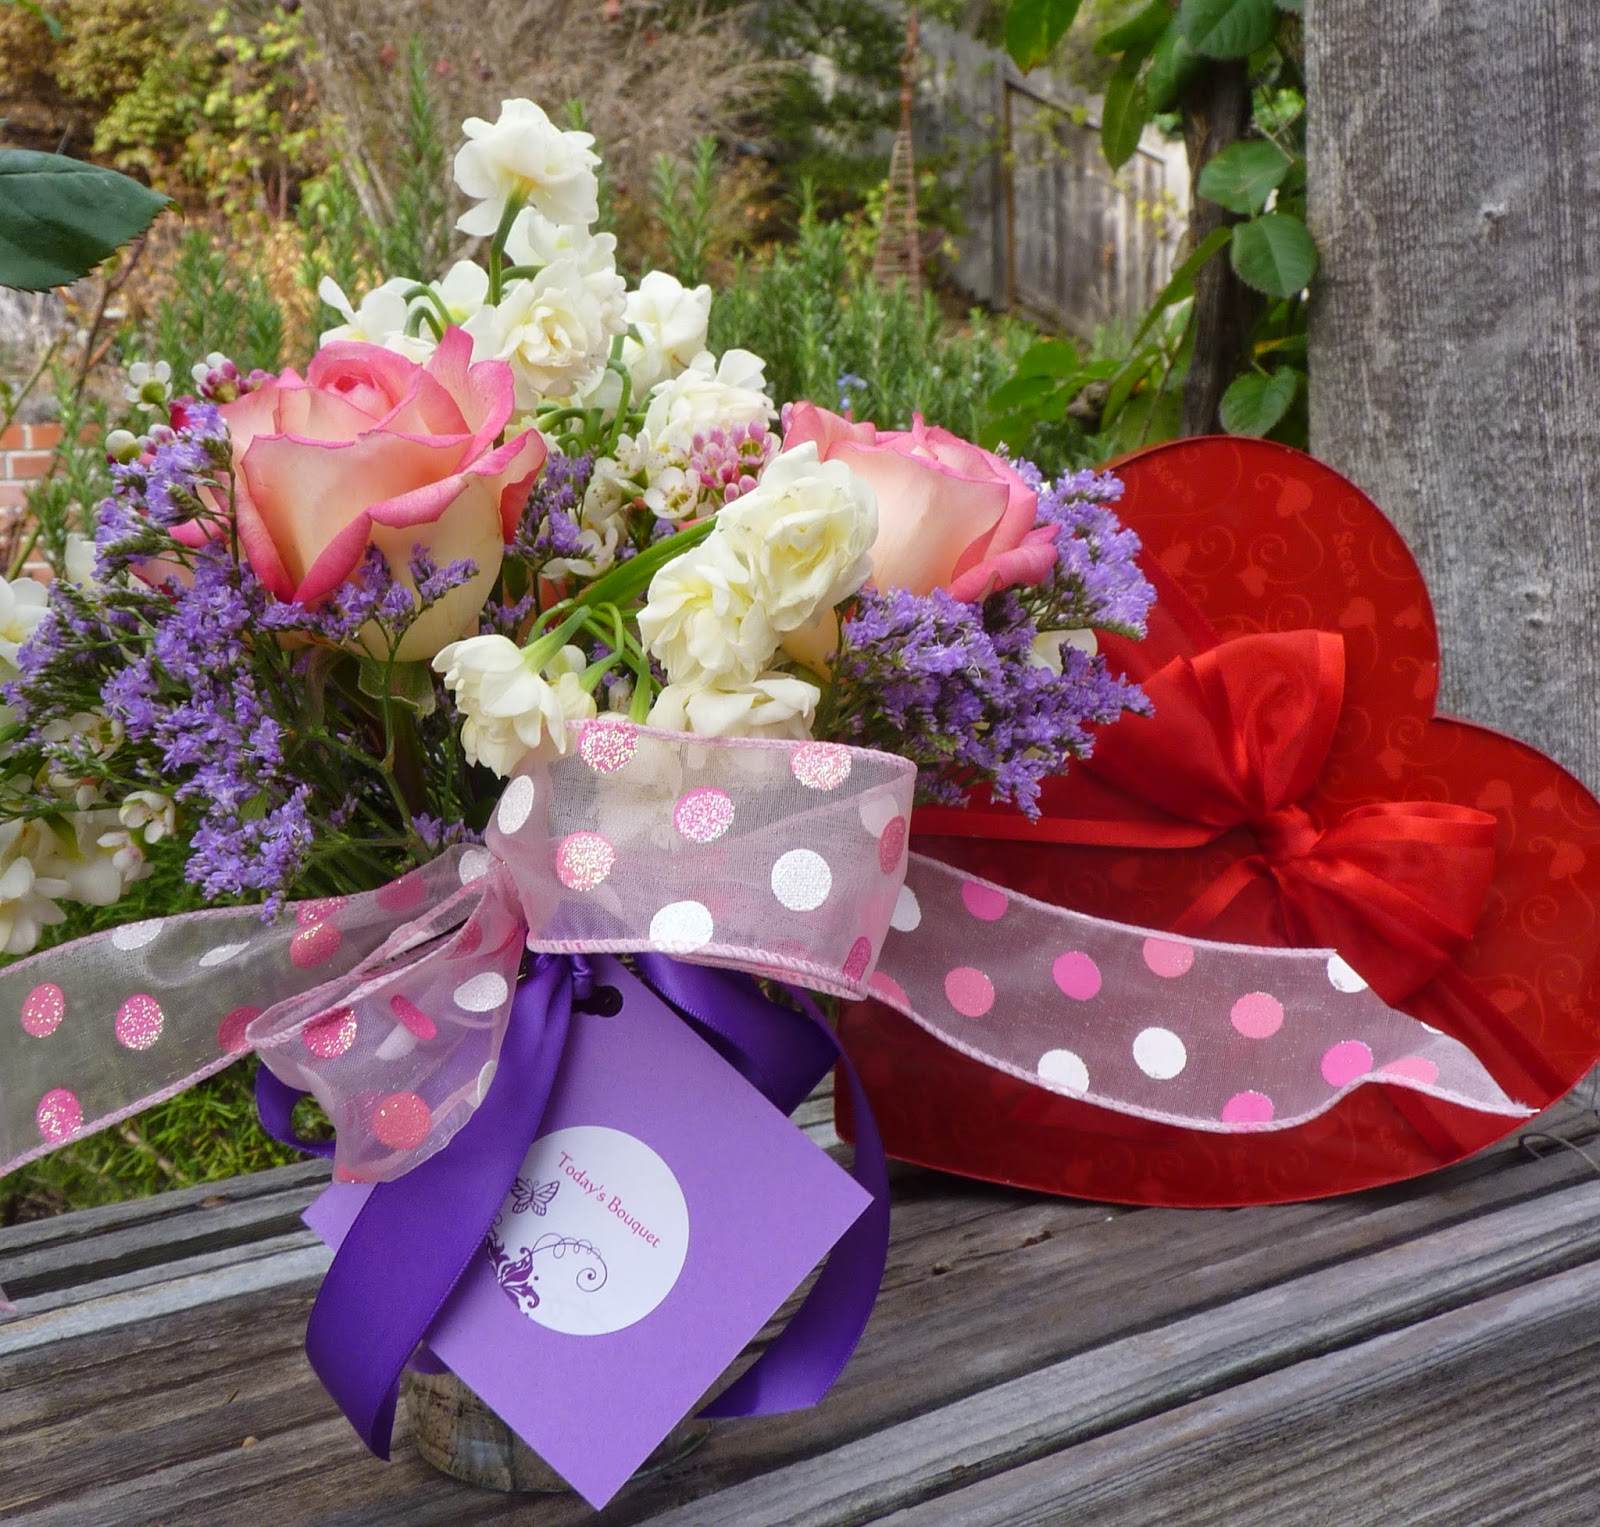 Todays bouquet commercial bouquets for valentines day typically are the standard cellophane izmirmasajfo